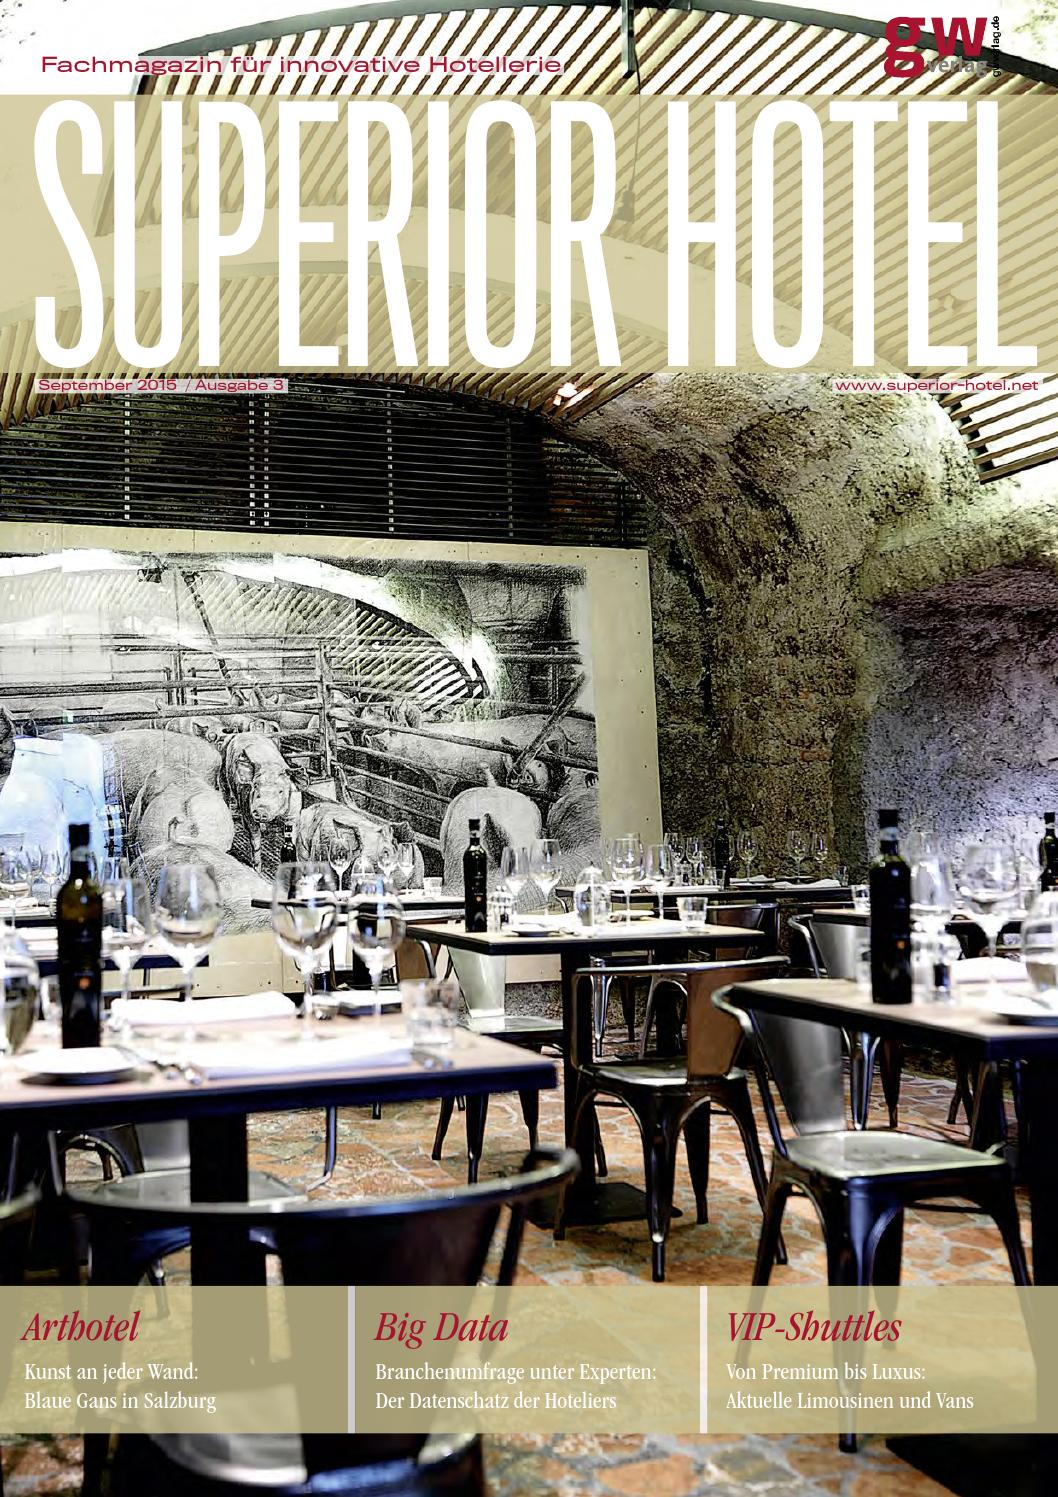 Superior Hotel 3/2015 by GW VERLAG - issuu